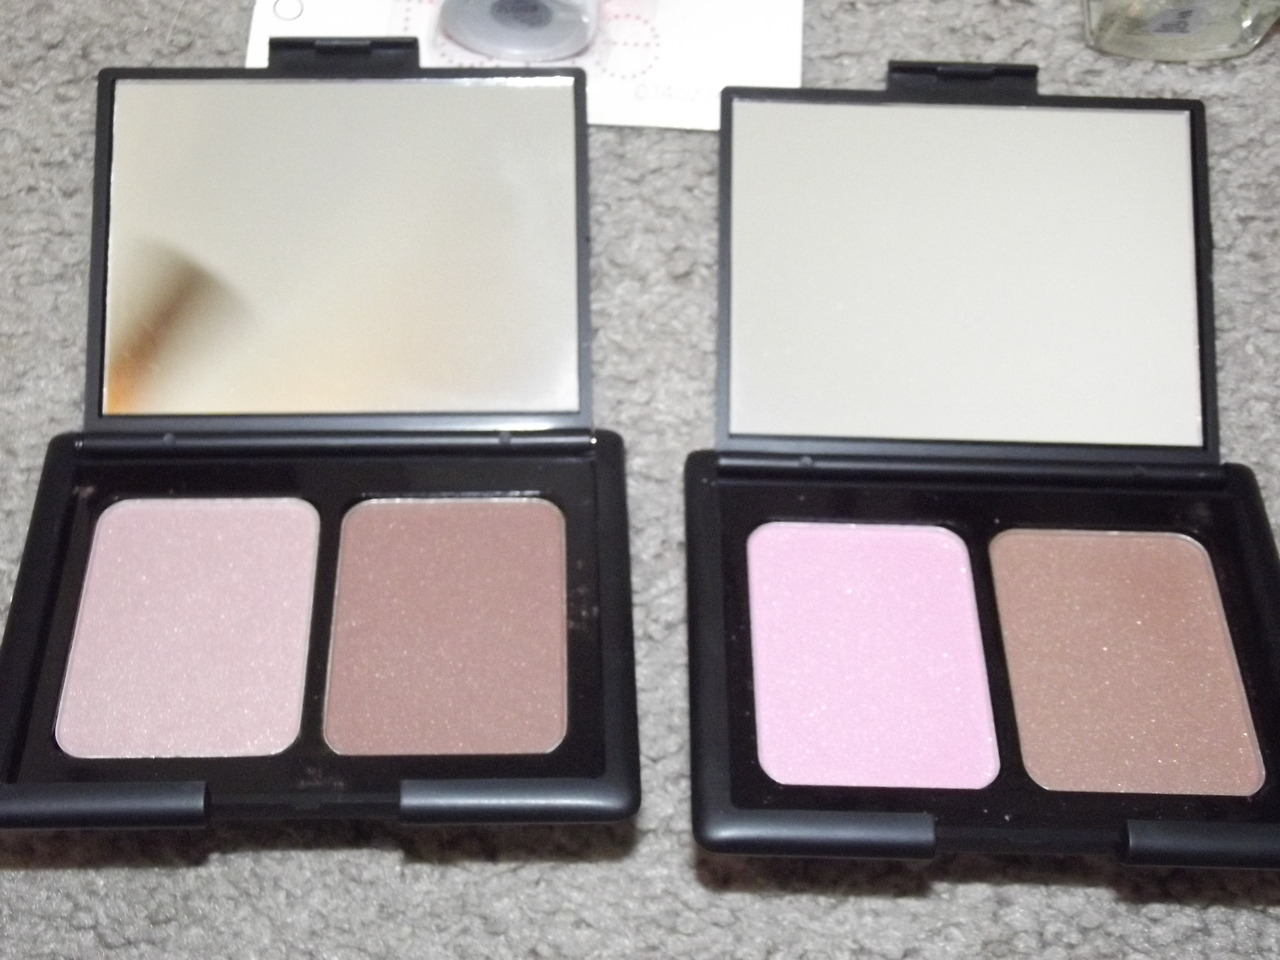 Swatches of the NEW E.L.F. Contouring blush and bronzing duo shades in St. Lucia, Antigua and Turks and Caicos! Check them out here on my blog!